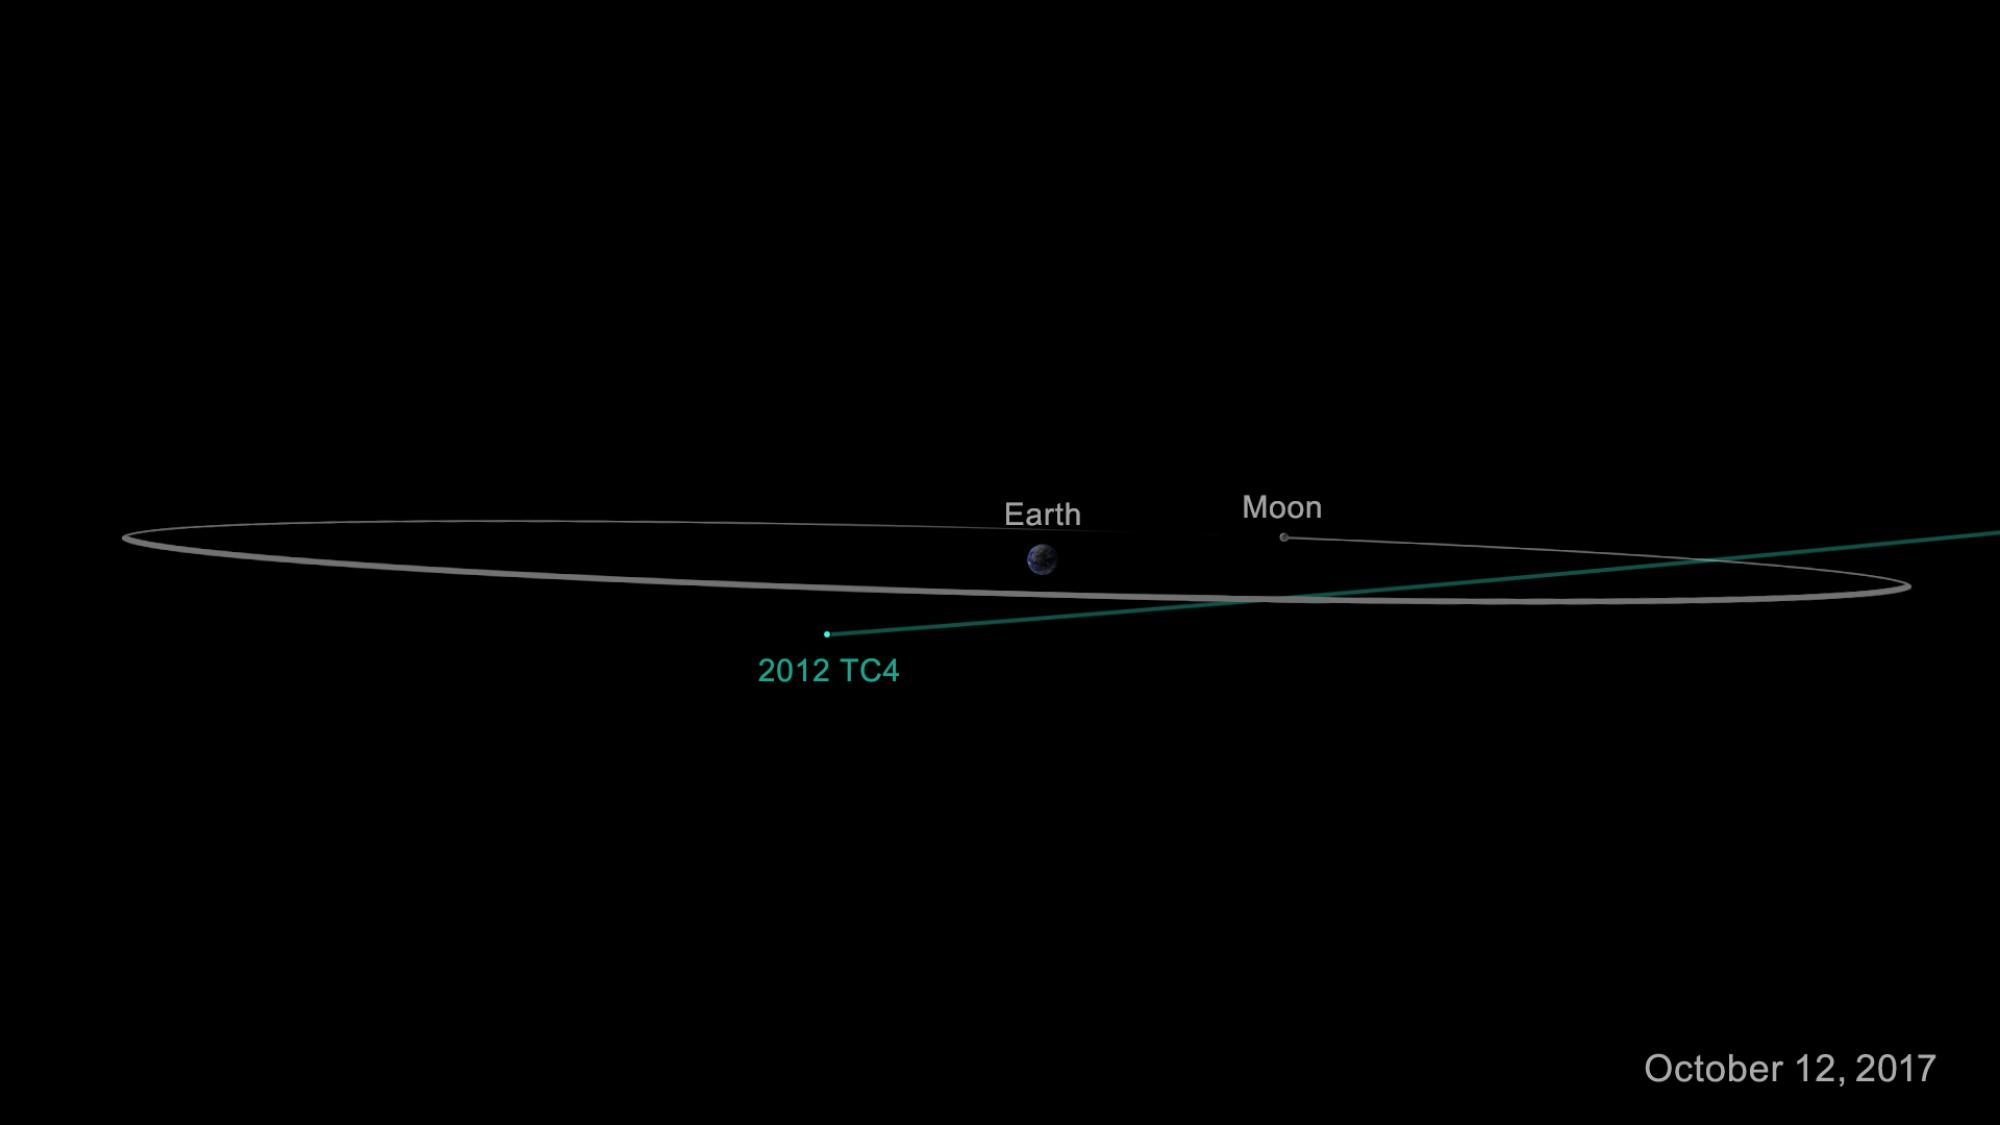 On Oct. 12, 2017, asteroid 2012 TC4 will safely fly past Earth. Even though scientists cannot yet predict exactly how close it will approach, they are certain it will come no closer to Earth than 4,200 miles .